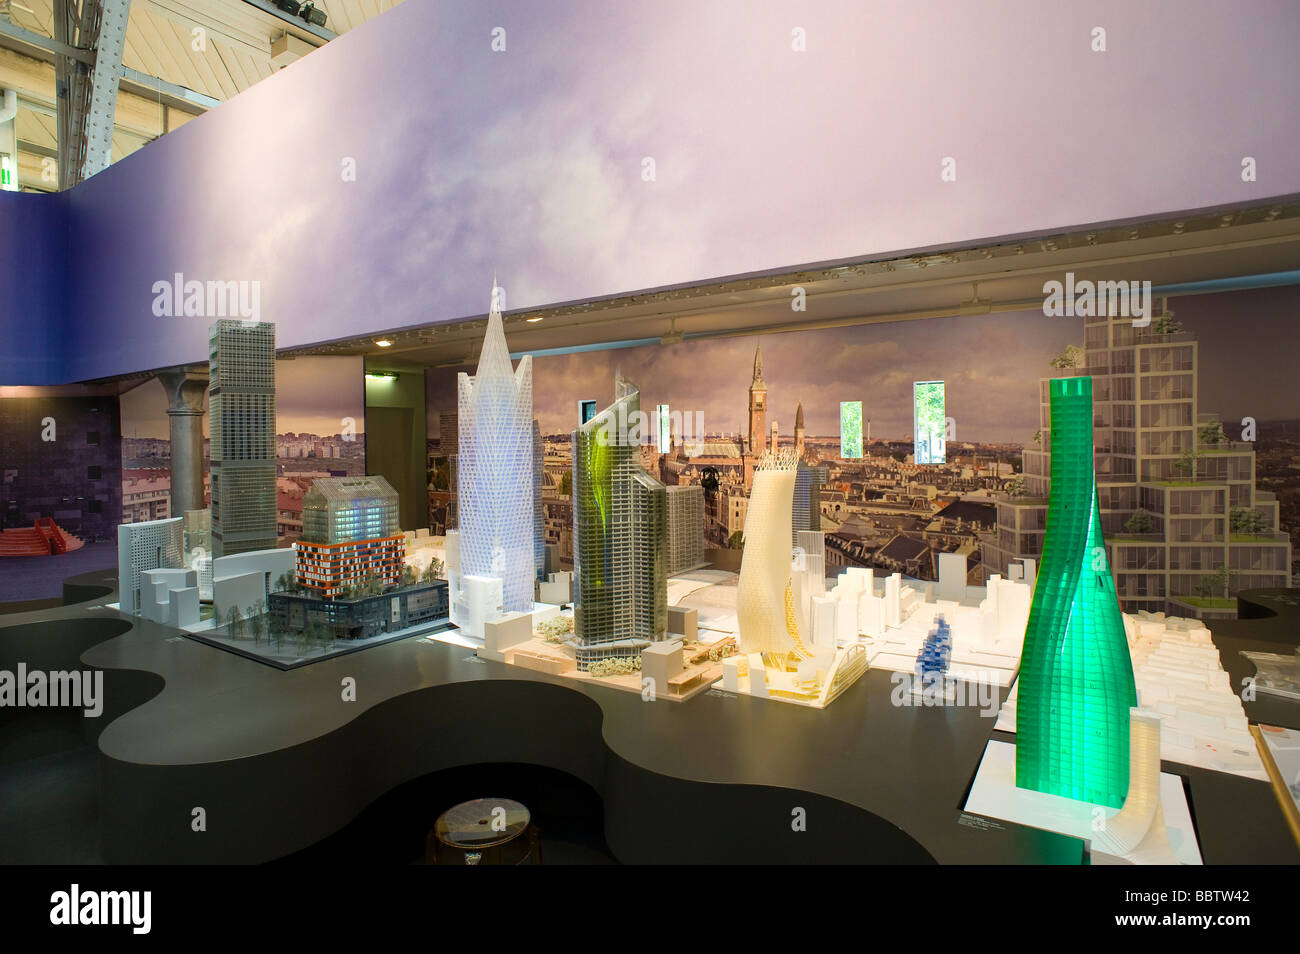 Paris Architekturausstellung Paris Exhibition of modern Architecture - Stock Image